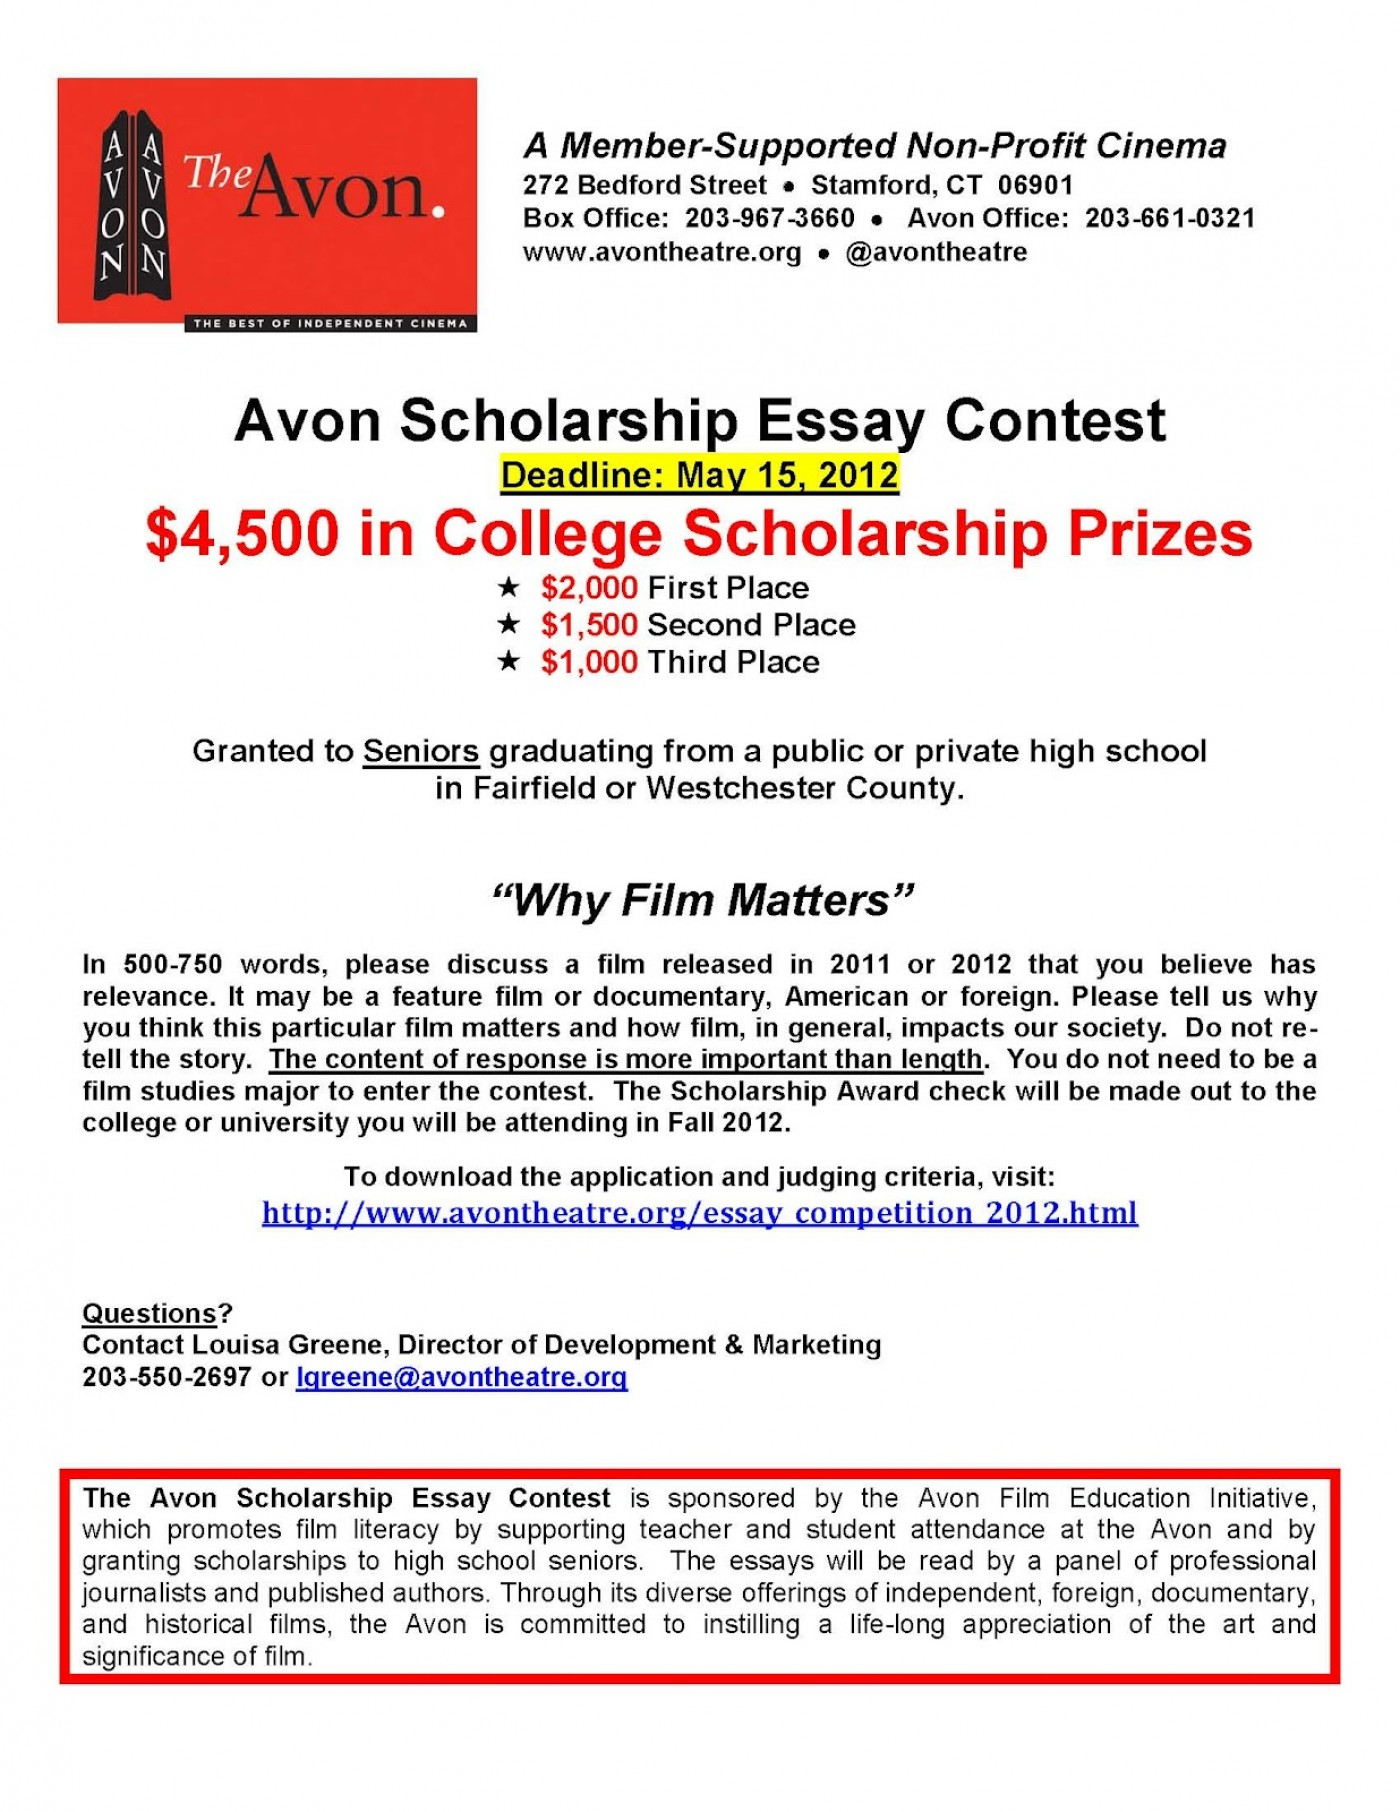 002 Essay Example No Scholarships College Scholarship Prowler Free For High School Seniors Avonscholarshipessaycontest2012 In Texas California Class Of Short Exceptional Undergraduates Students 2019 1400